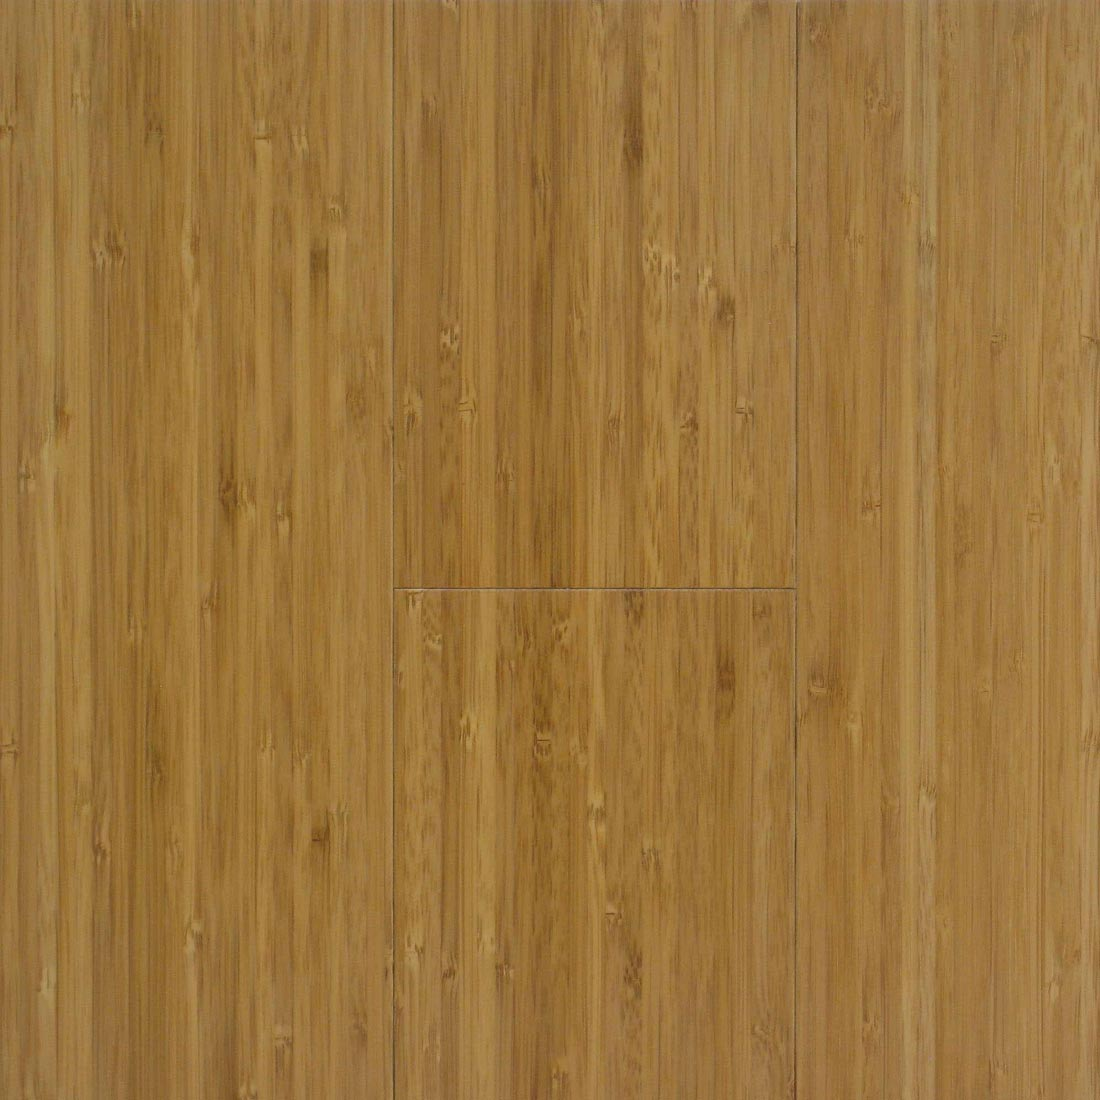 Carbonized Vertical Engineered Hawa Bamboo Flooring